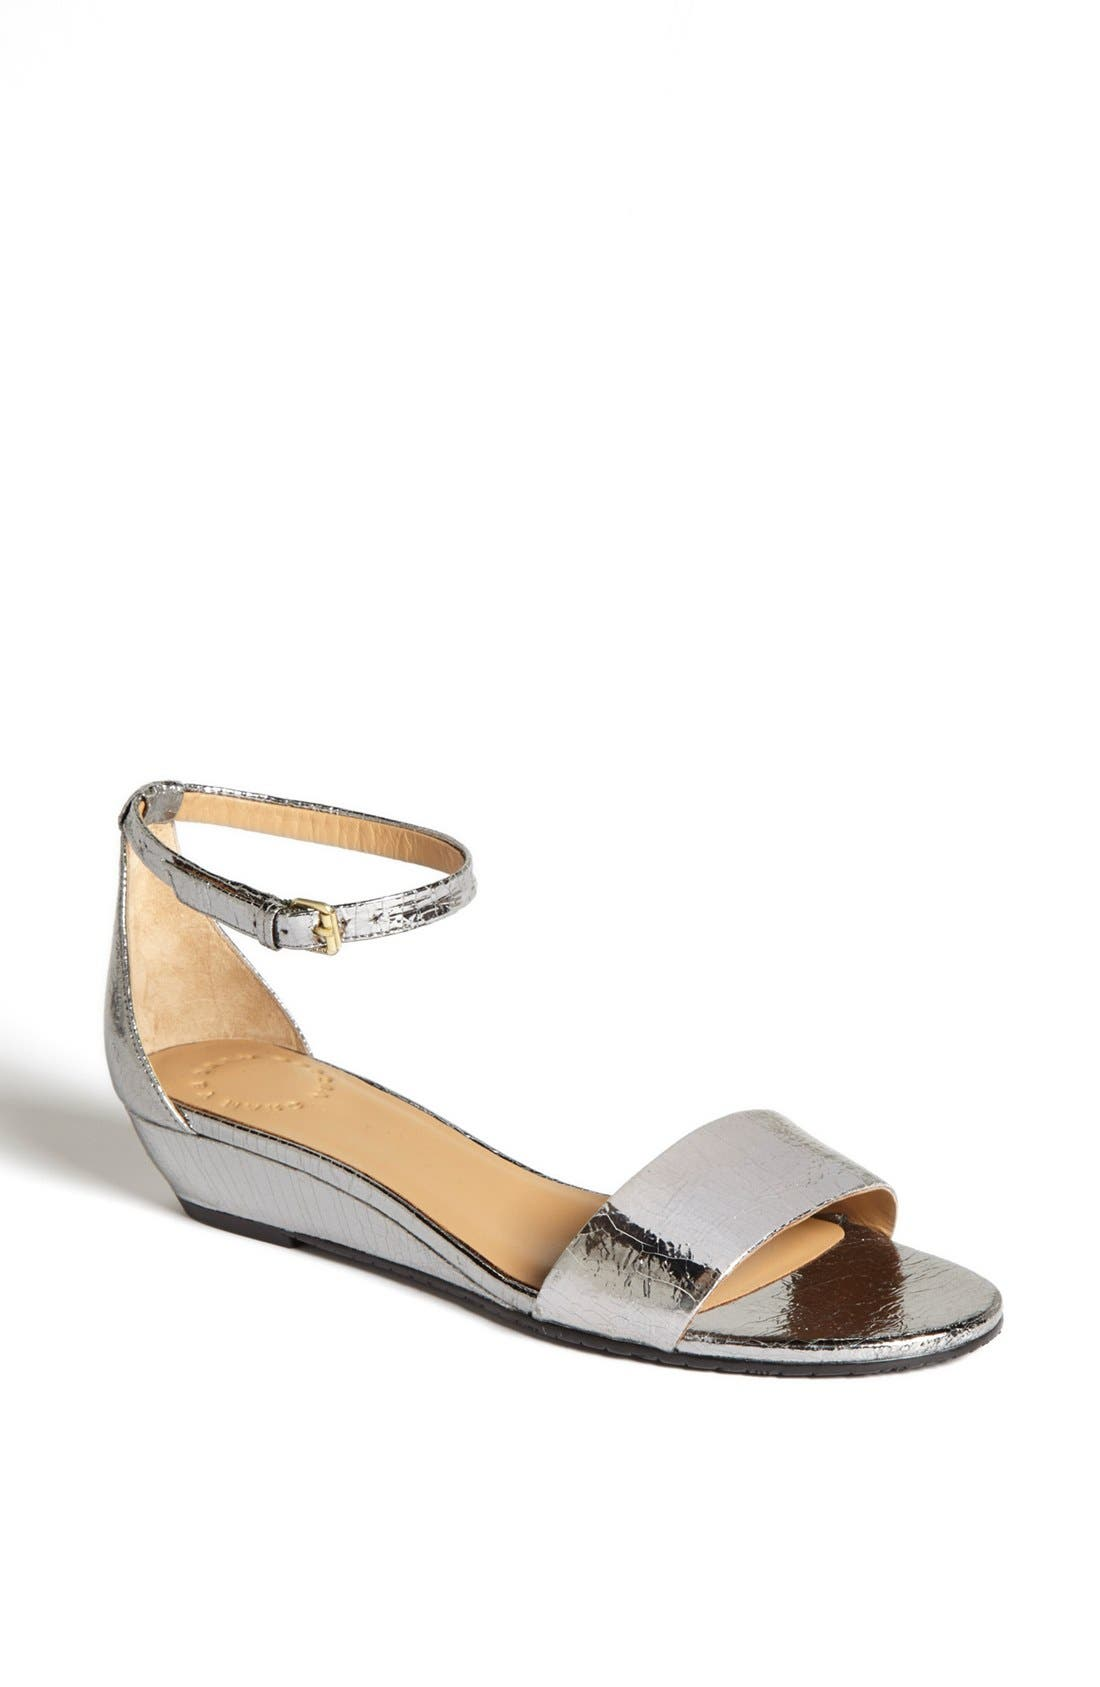 Alternate Image 1 Selected - MARC BY MARC JACOBS 'Simplicity' Wedge Sandal